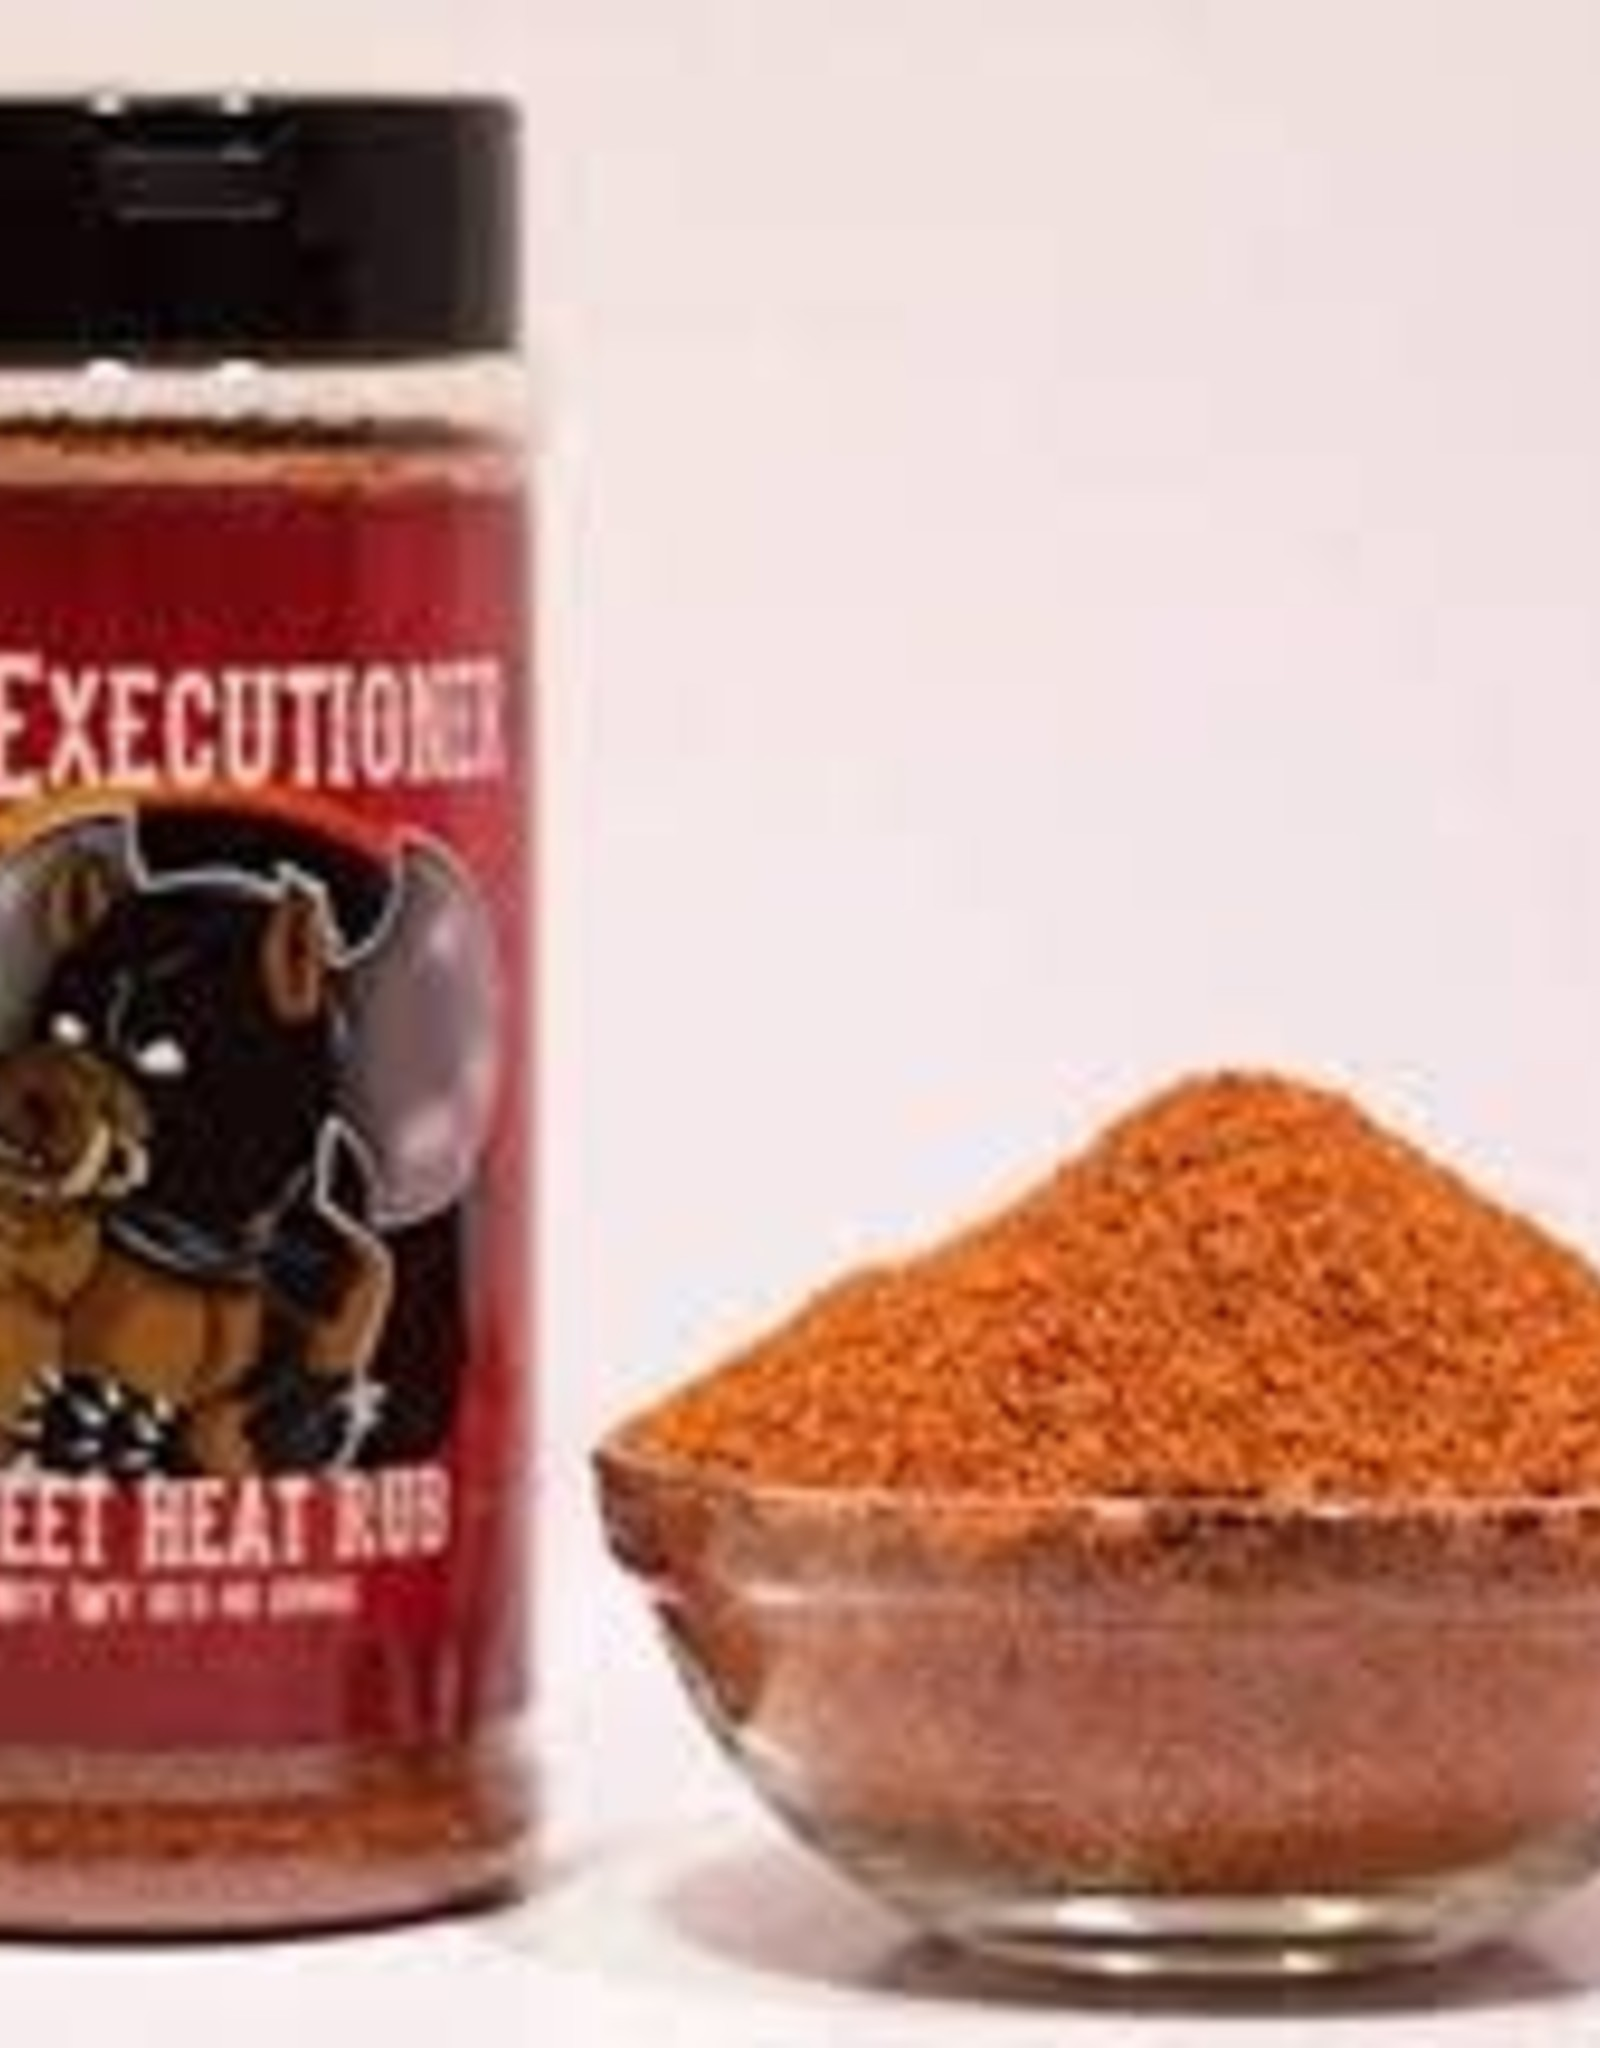 BBQ Superstore The Executioner Sweet Heat Rub